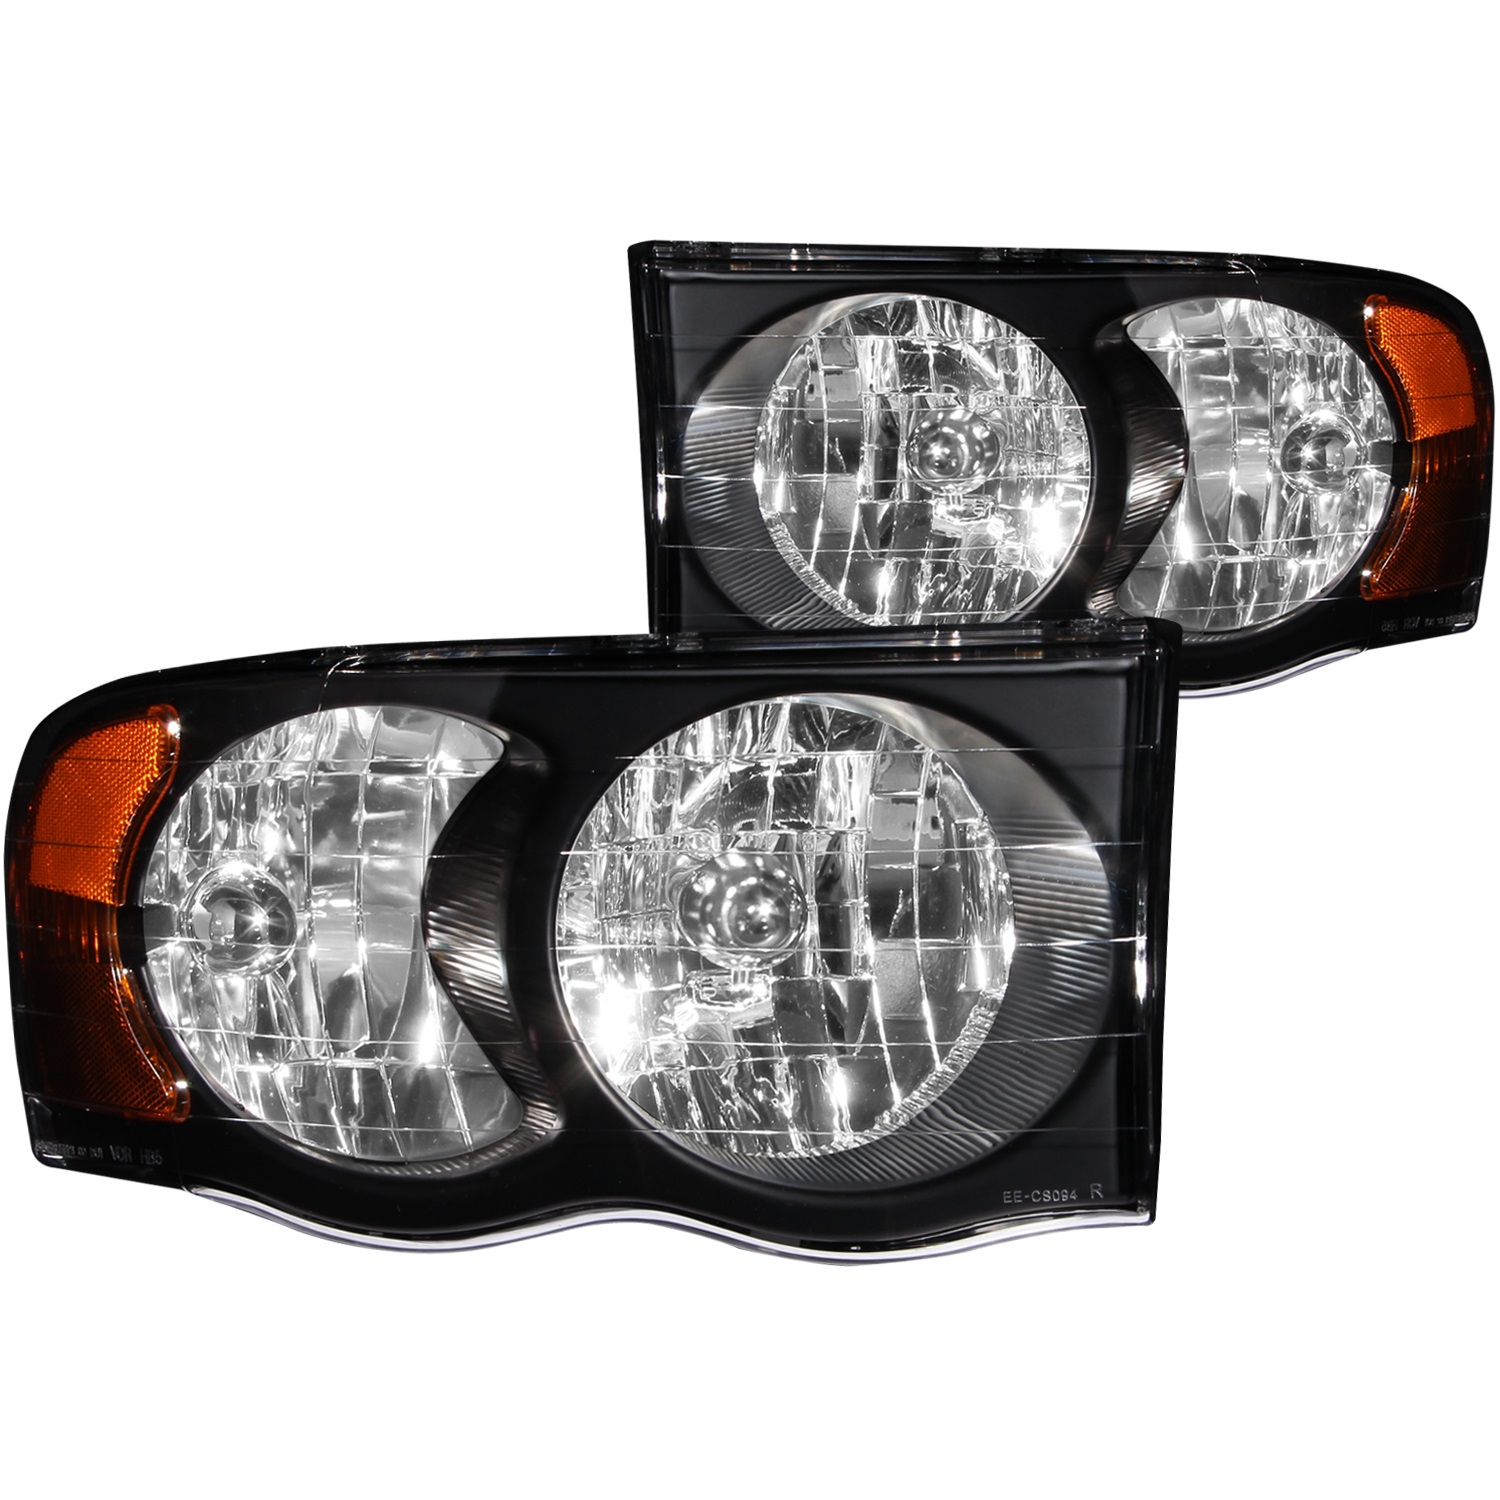 Anzo USA 111022 Crystal Headlight Set Fits 02-06 Ram 1500 Ram 2500 Ram 3500